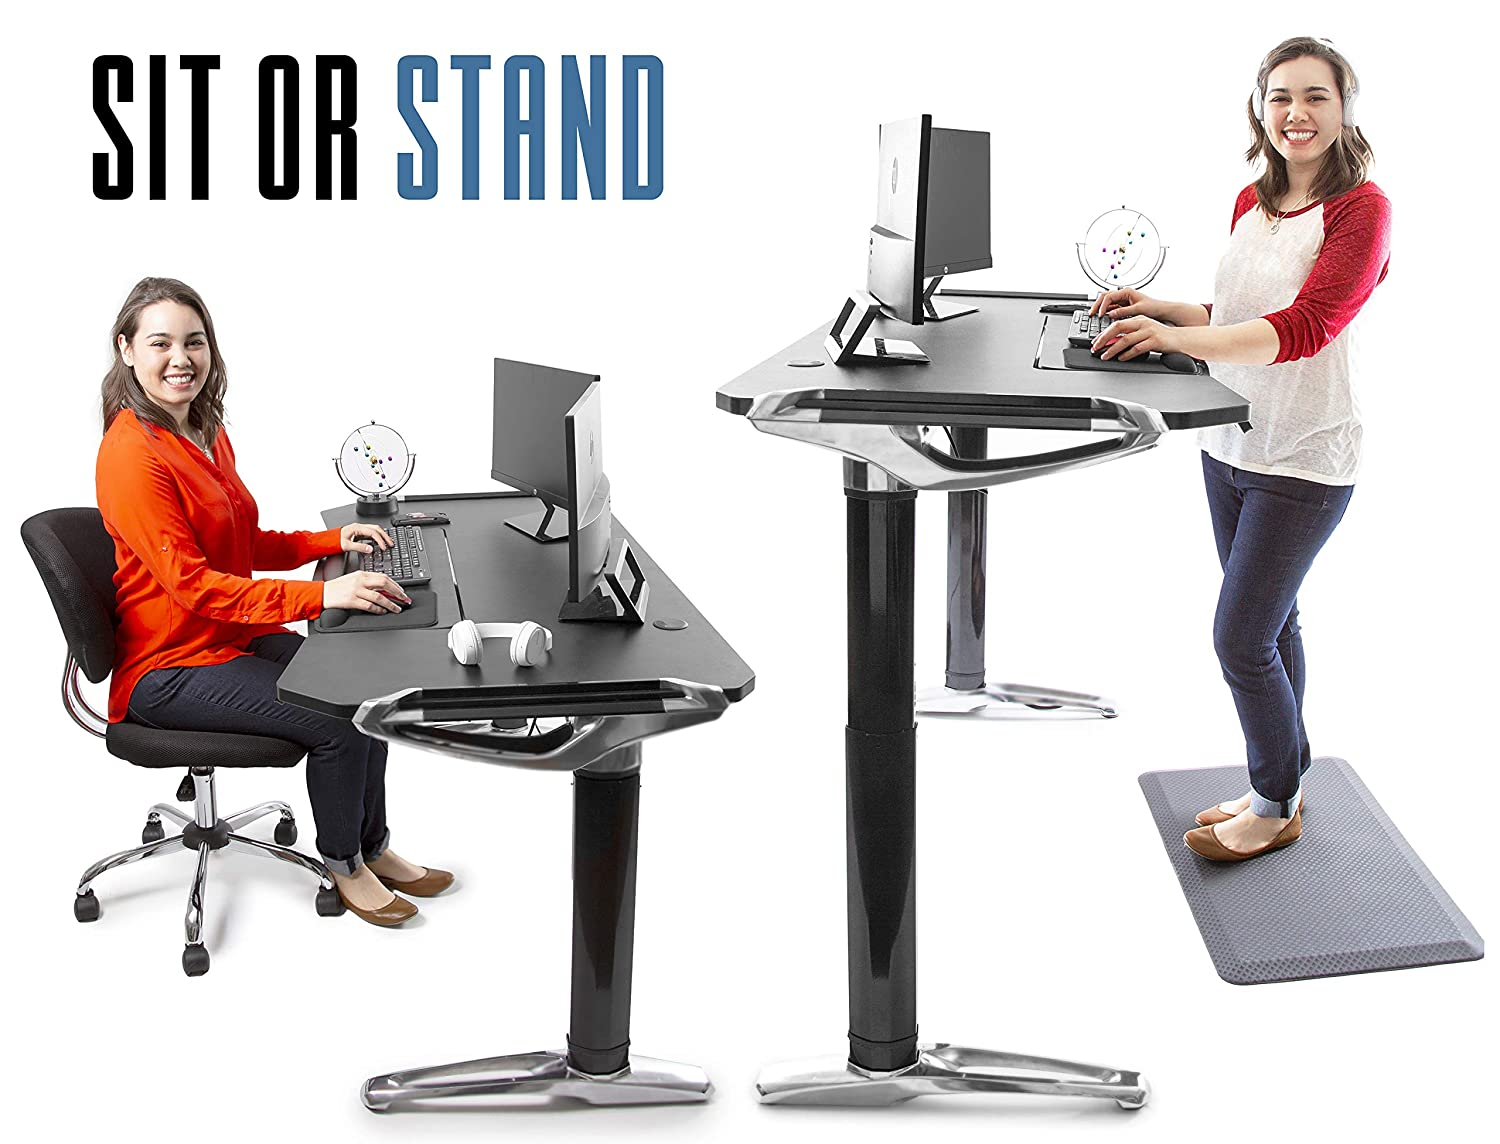 Stand Steady Tranzendesk Executive Standing Desk Sit to Stand Up Desk with Programmable Electric Lift Chrome Detailing Fully Adjustable Keyboard Tray Great for Home Office Gaming 55